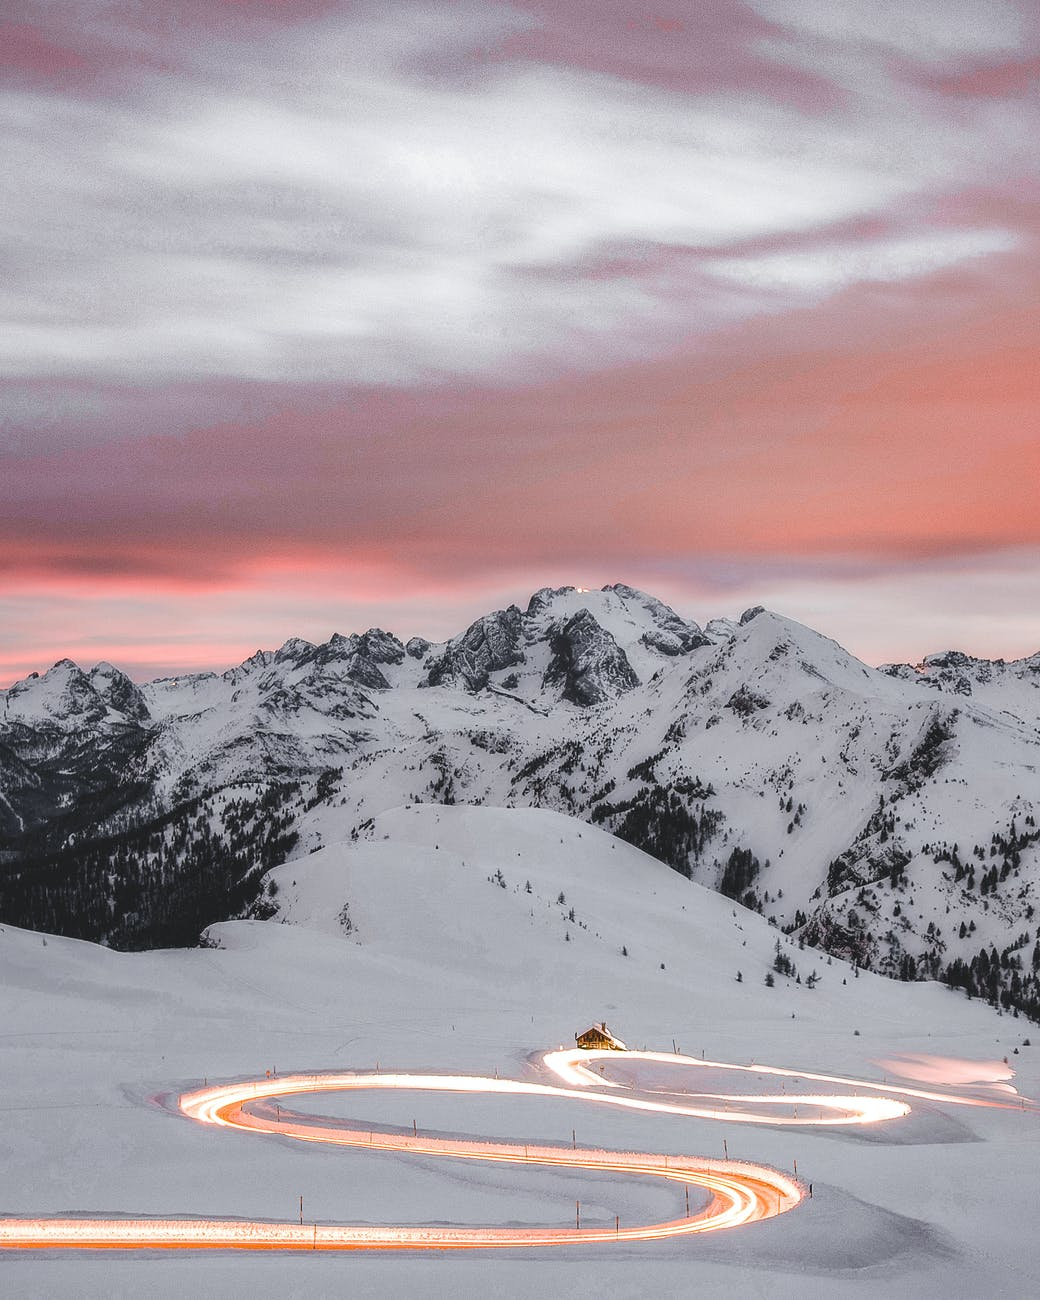 time lapse photography of curved road with vehicles passing